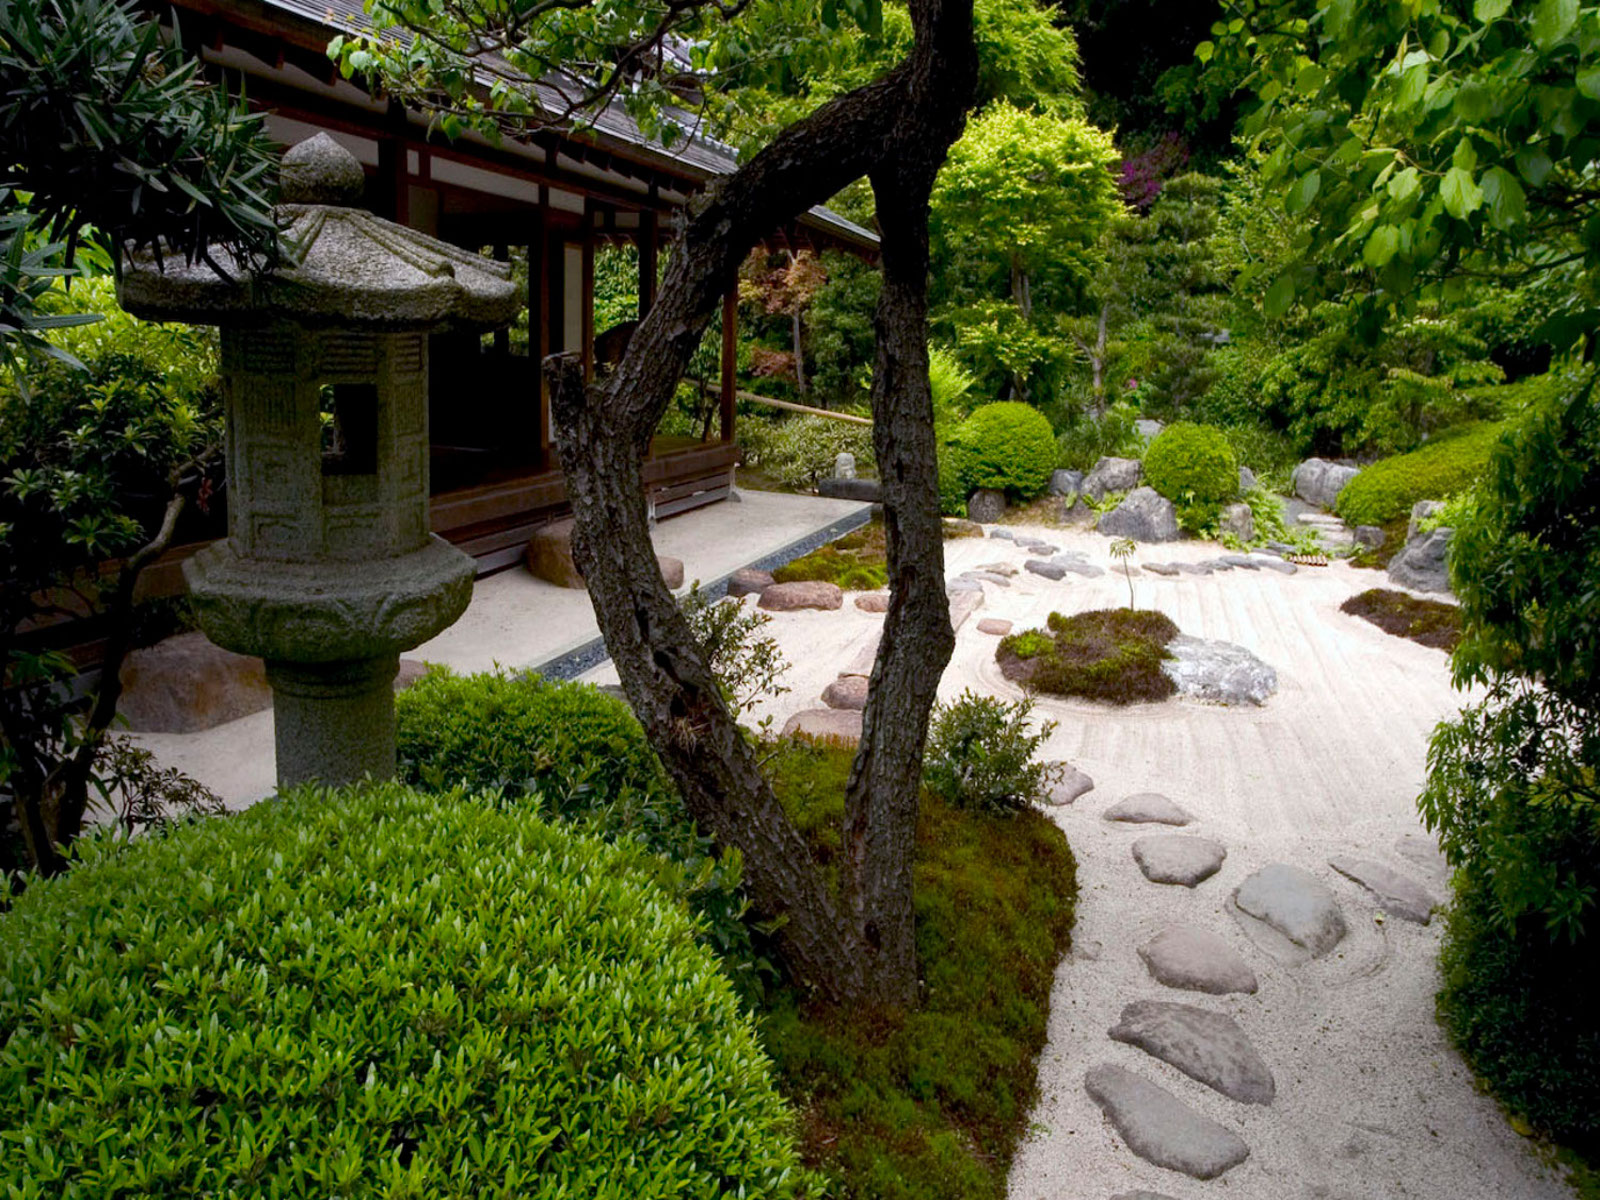 Zen garden wallpaper hd wallpaper pictures gallery for Japanese garden architecture